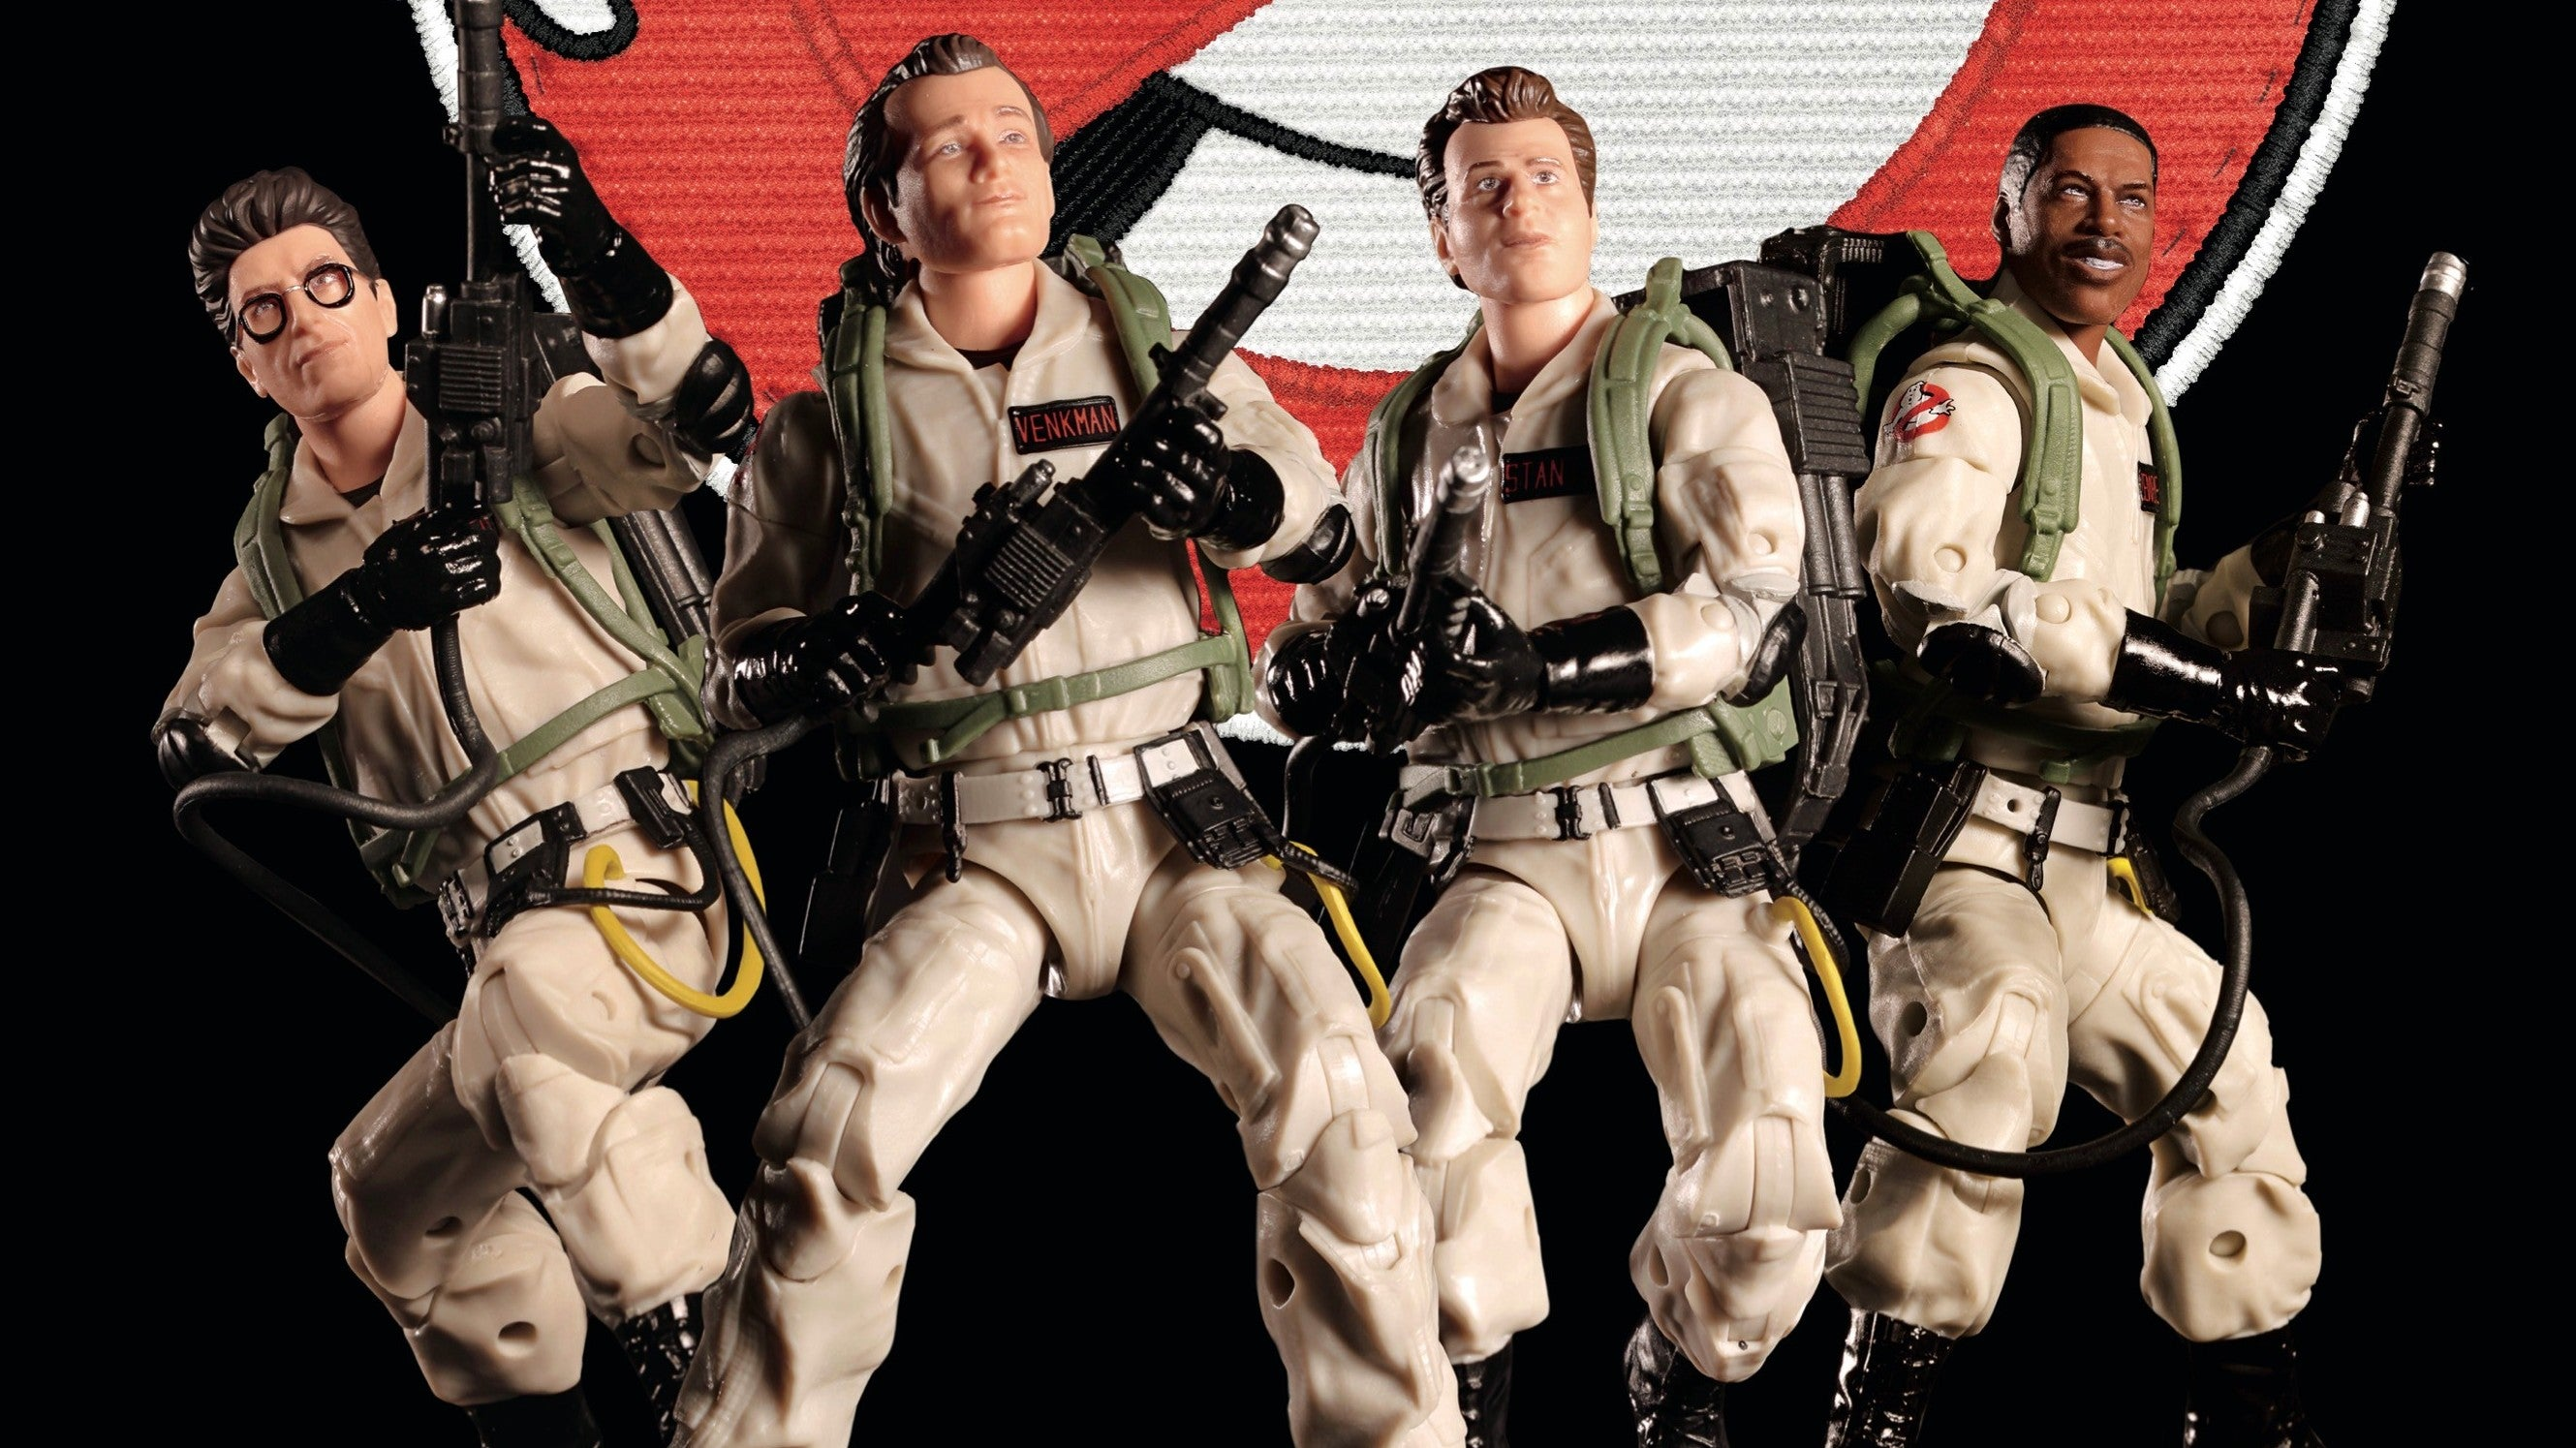 These Are Some Of The Best-Looking Ghostbusters Toys Ever